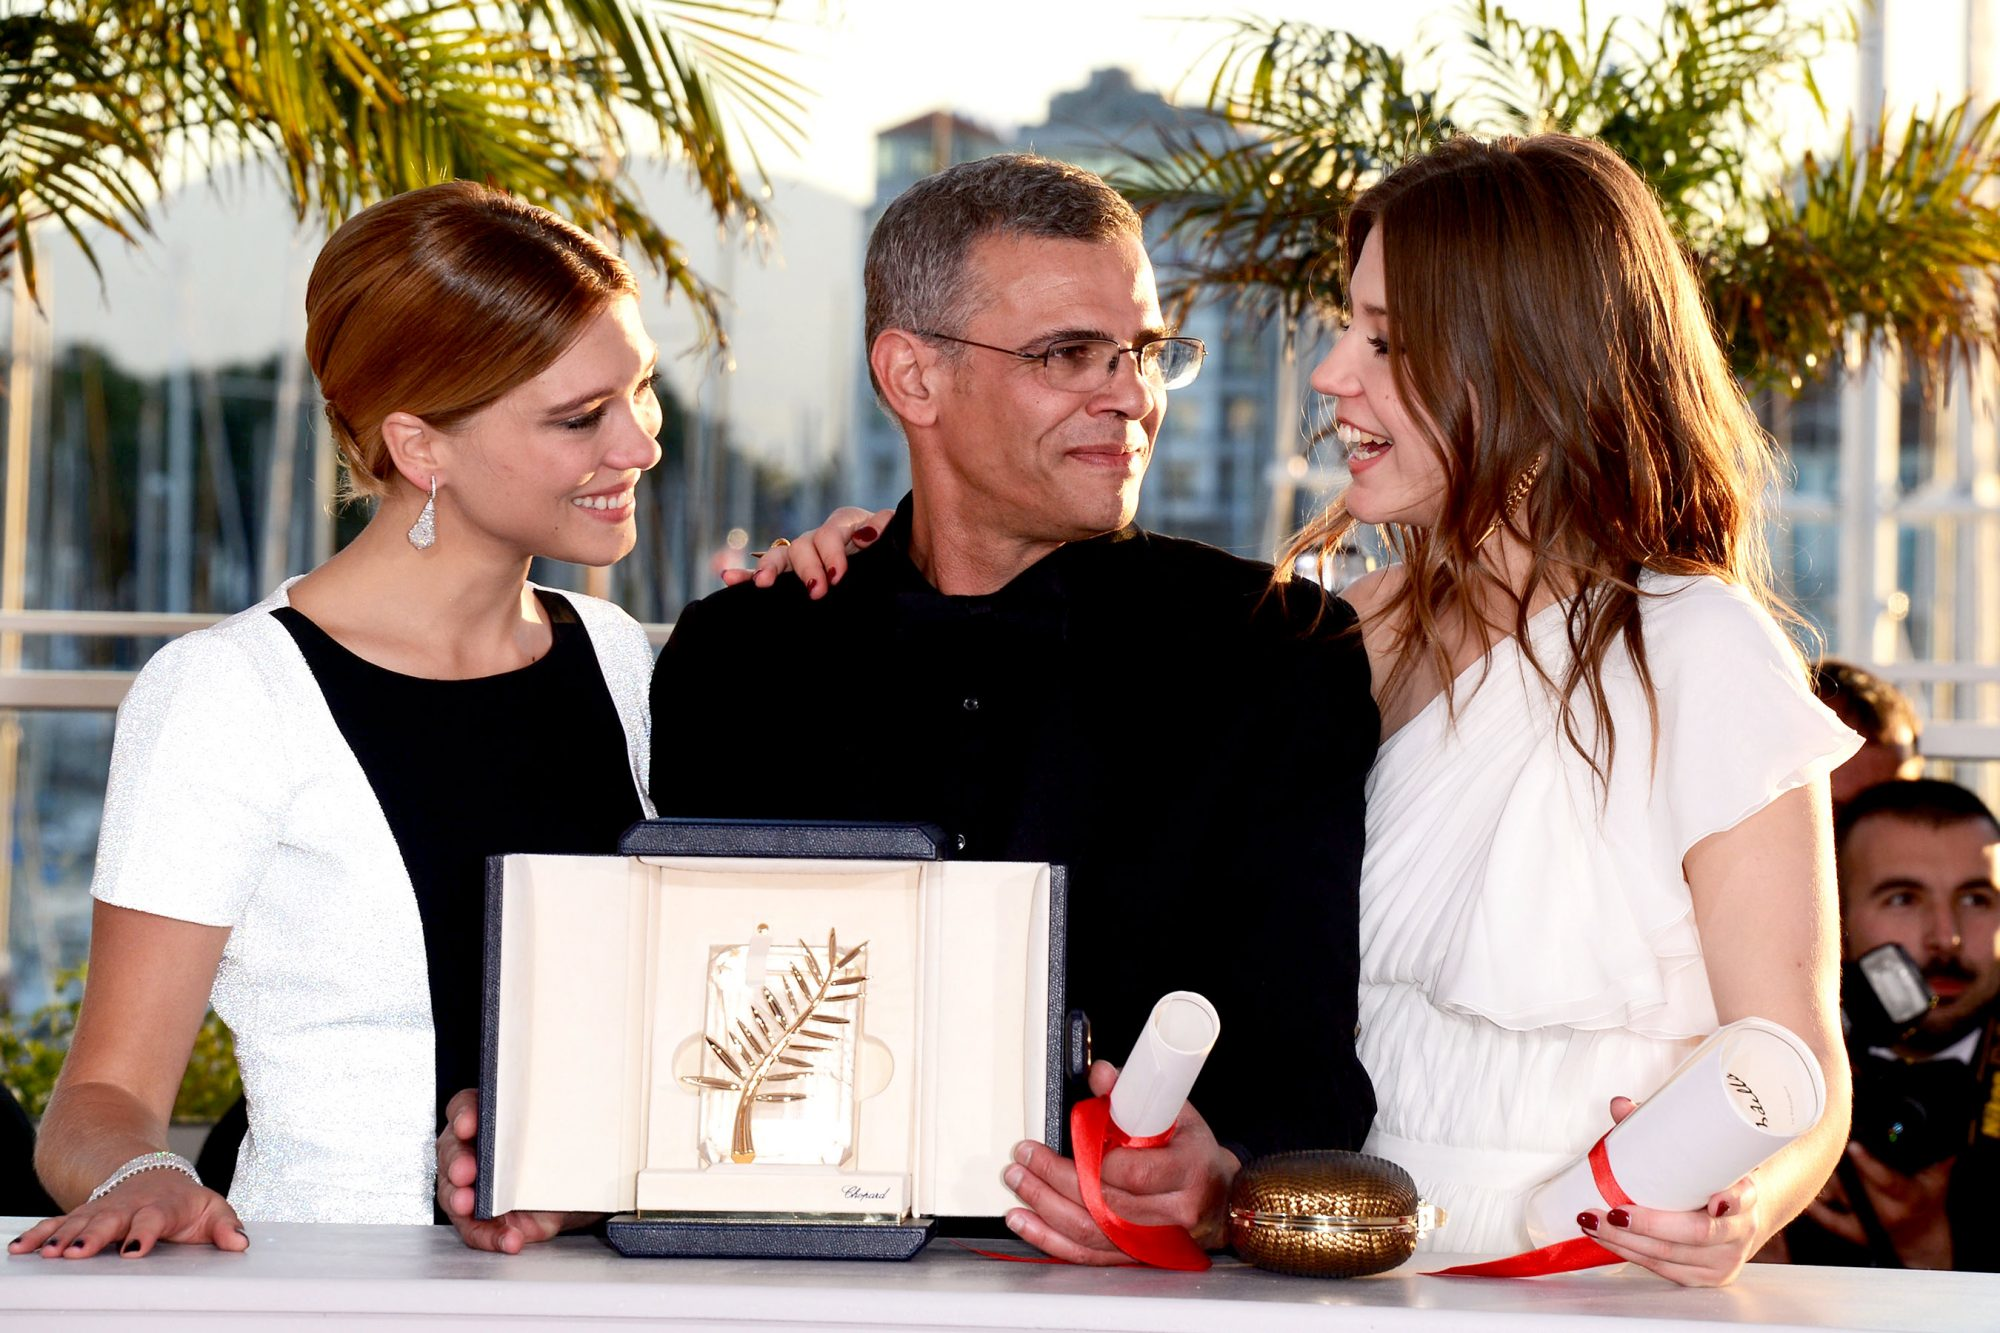 Award Winners Photocall - The 66th Annual Cannes Film Festival